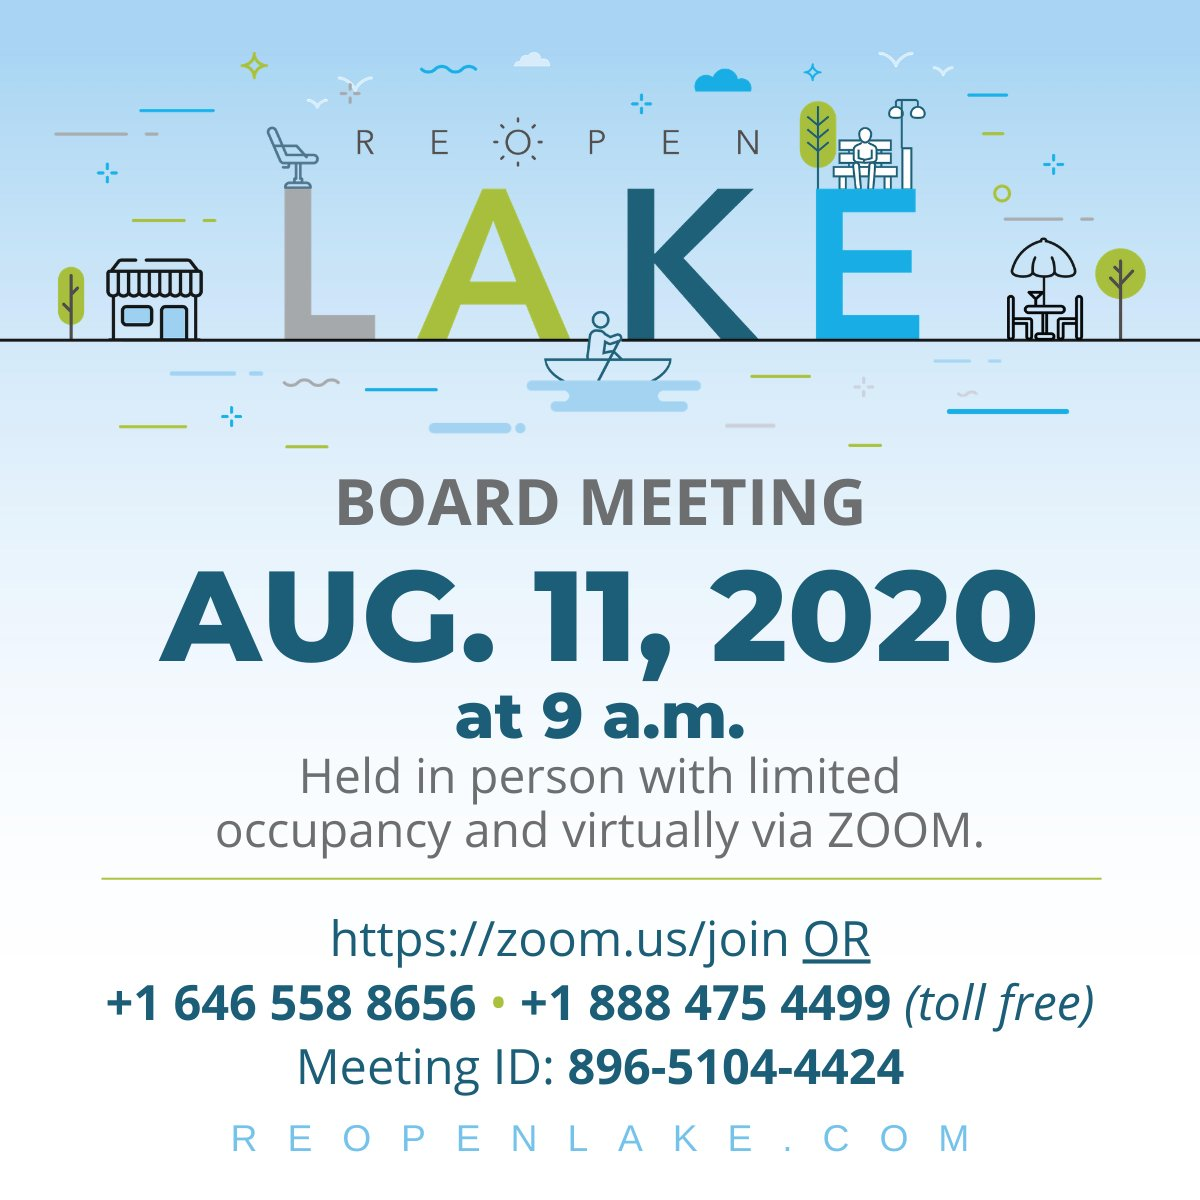 Tomorrow's Lake County Board of County Commission meeting will be held virtually as well as in person with very limited seating. To view the livestream, visit . To comment virtually during the meeting, connect via Zoom with the instructions below.